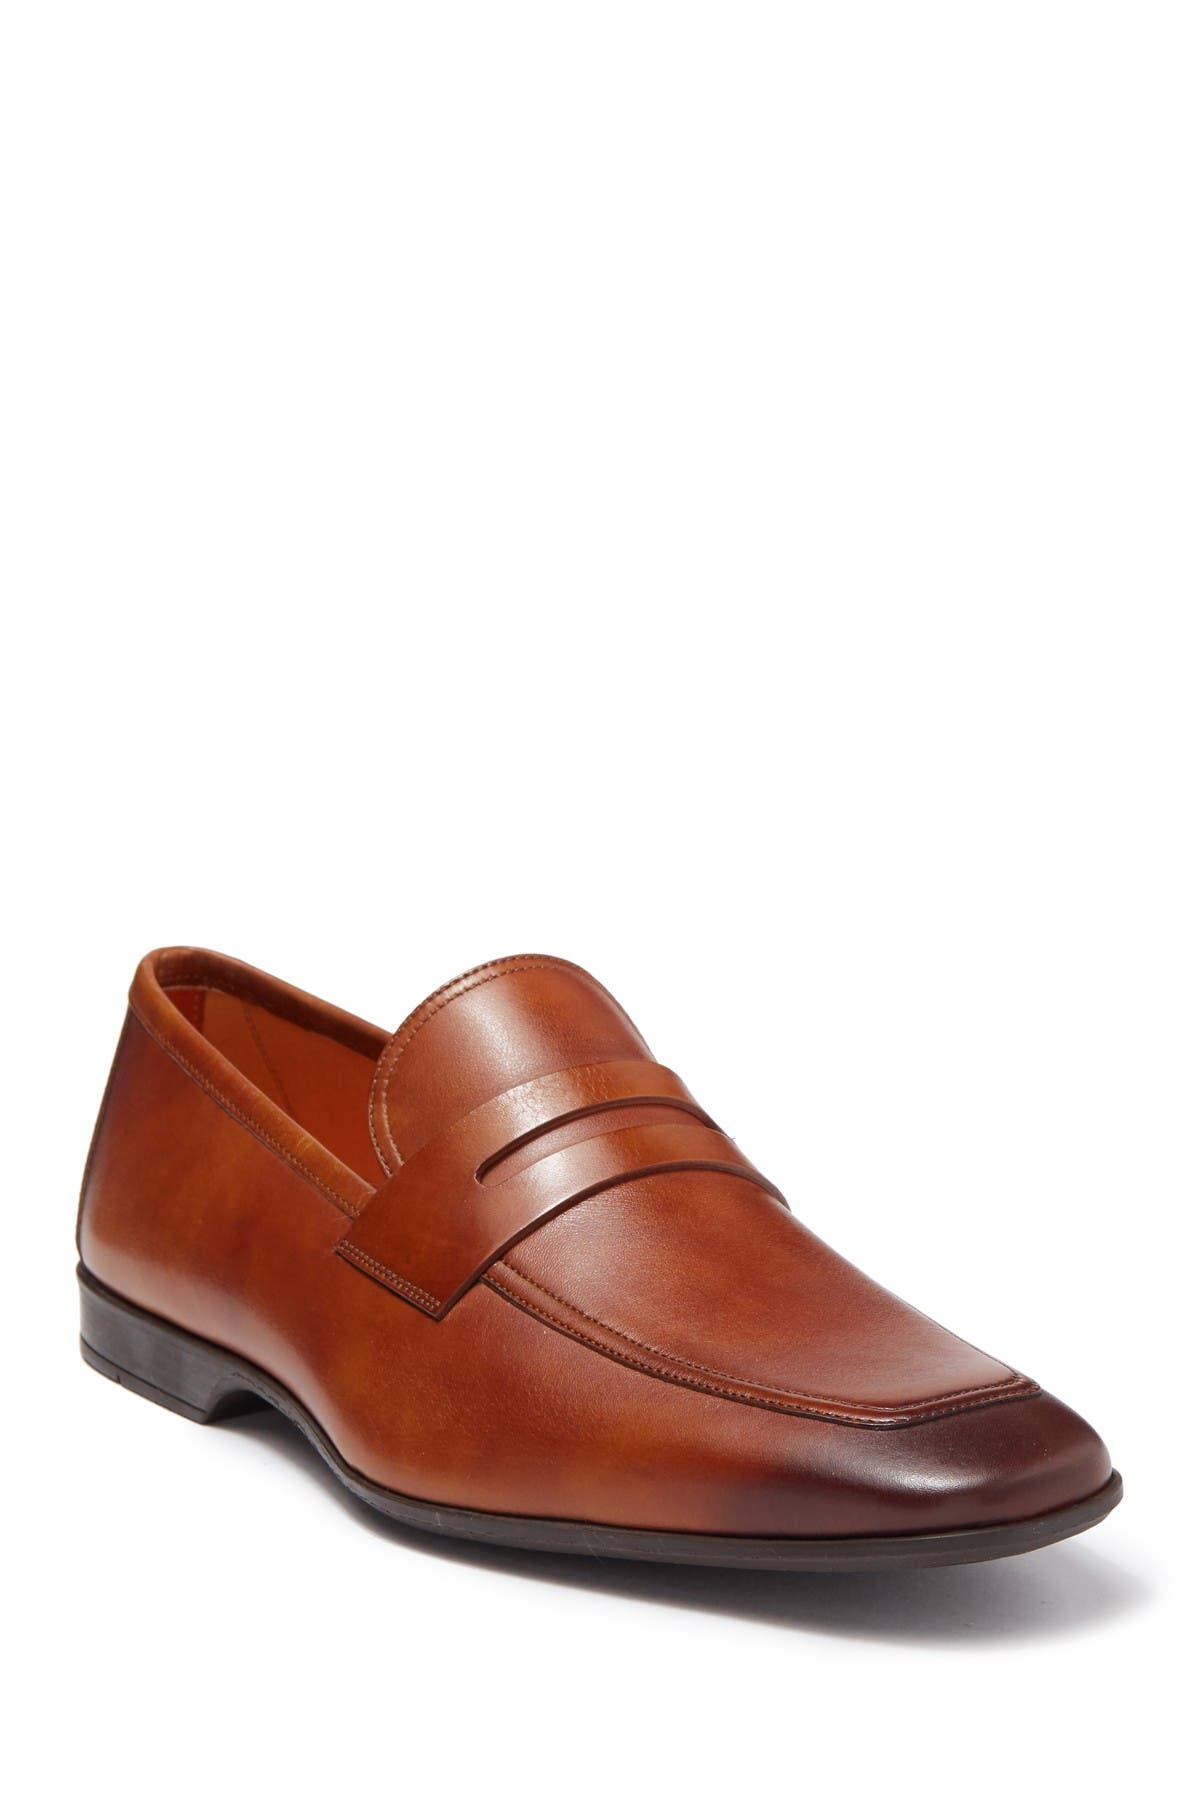 Image of Magnanni Vince Leather Penny Loafer